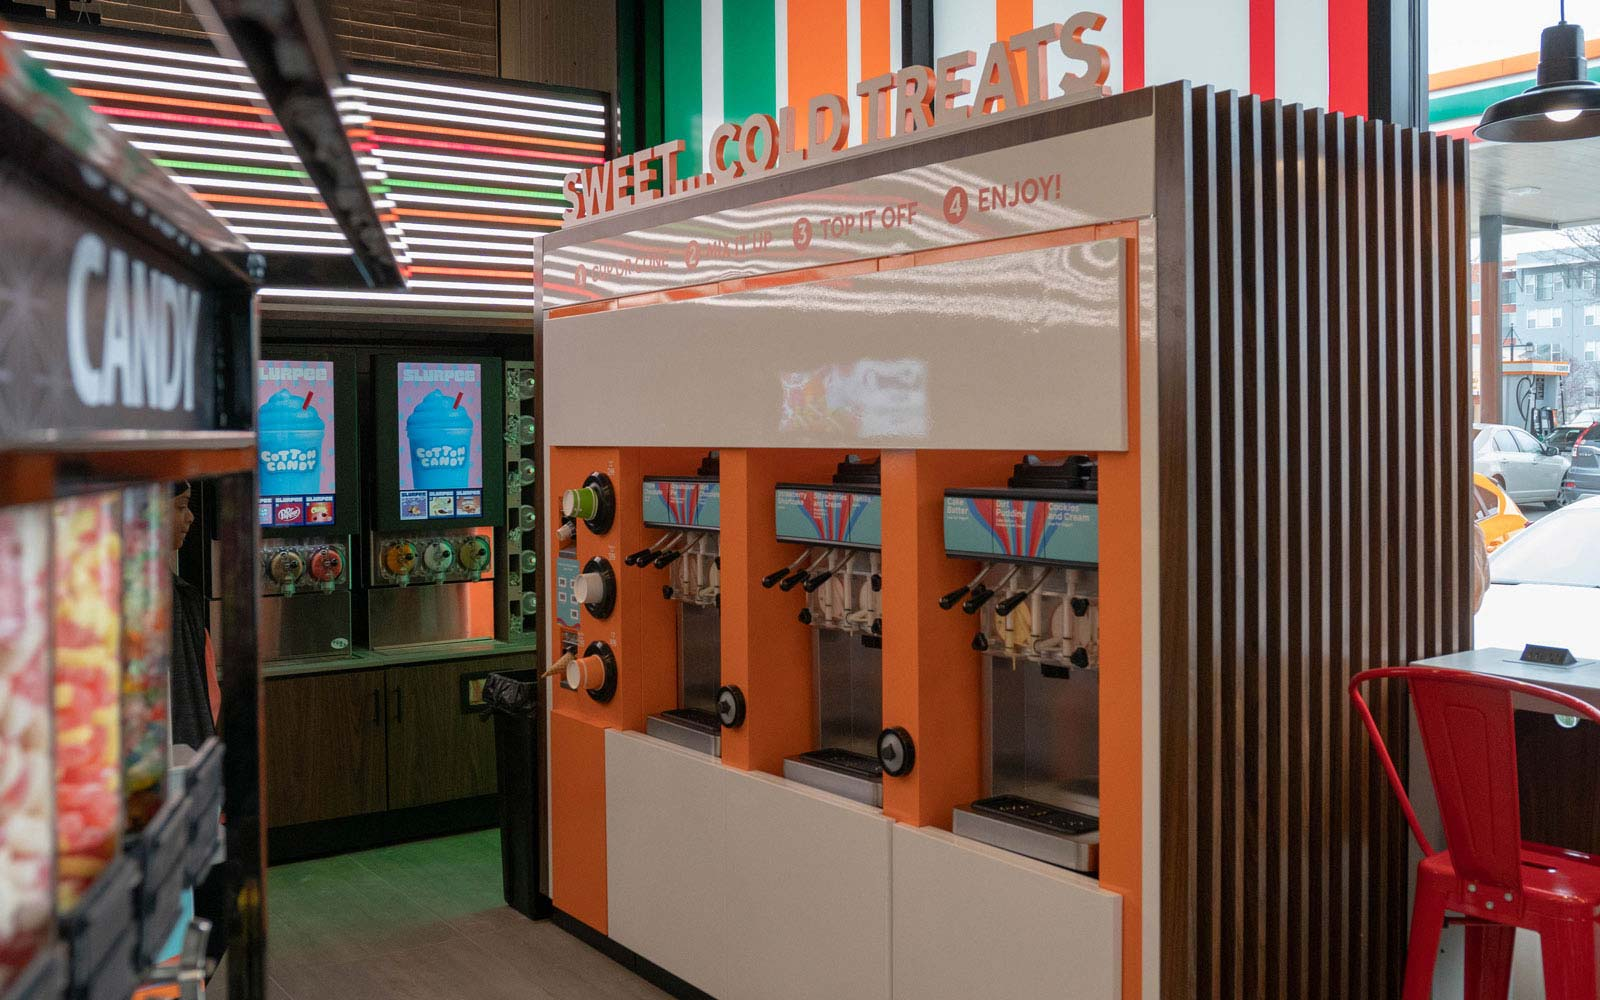 7-Eleven Opened a Sit-Down Cafe Concept